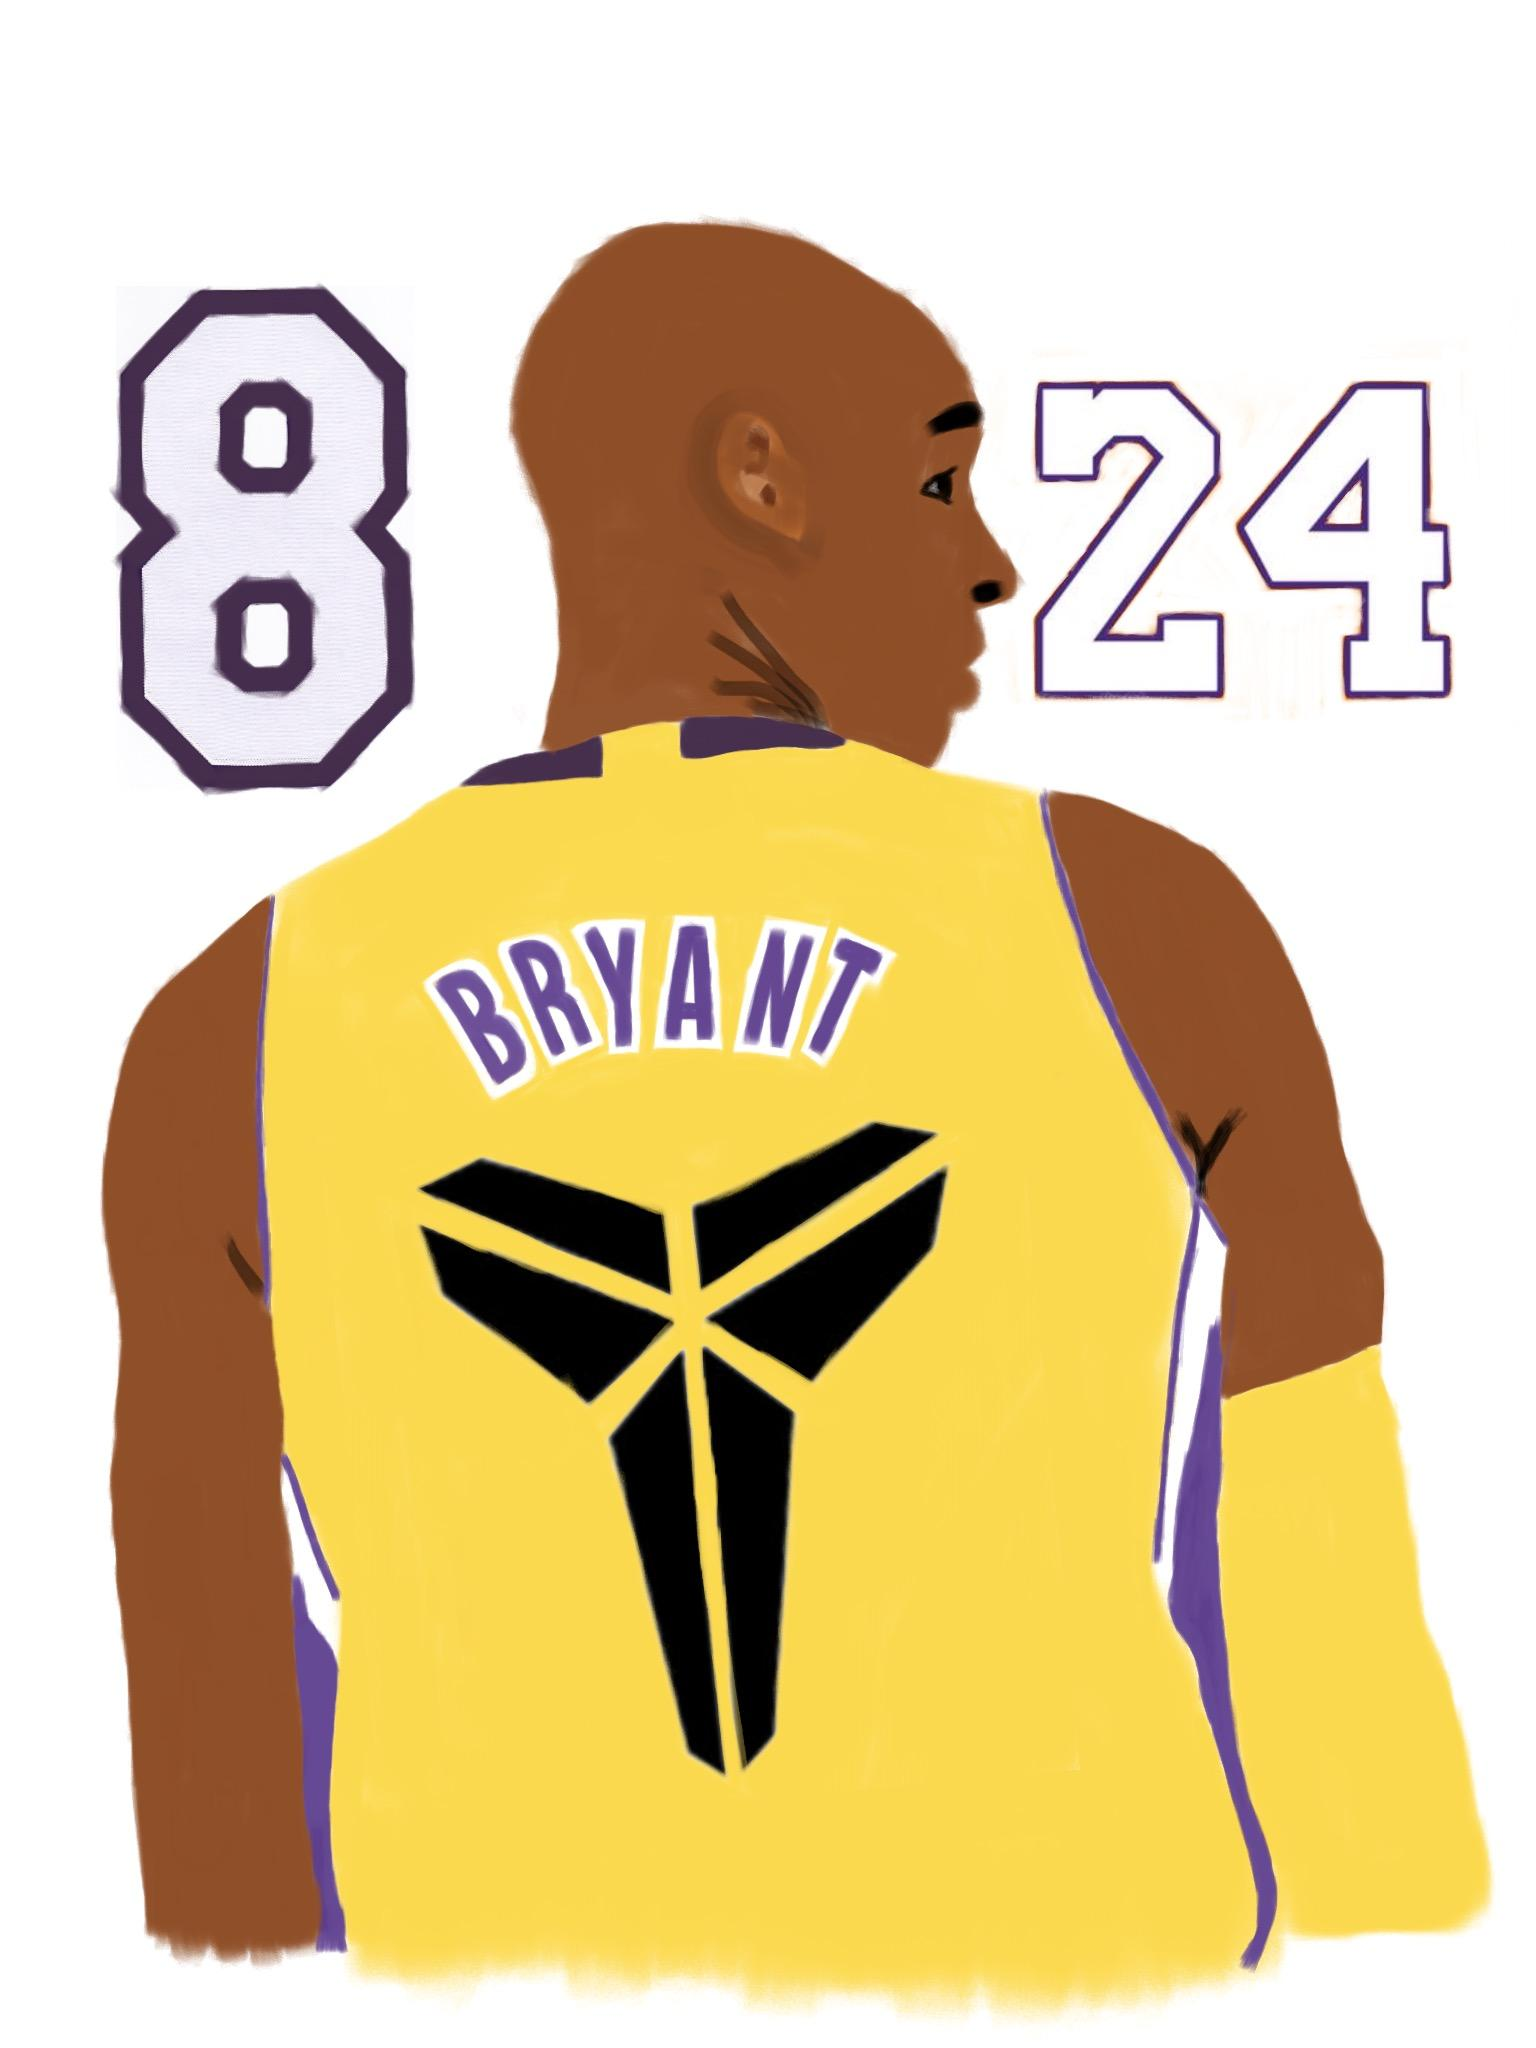 Regardless of the number on his back, Kobe was a legend his whole career.